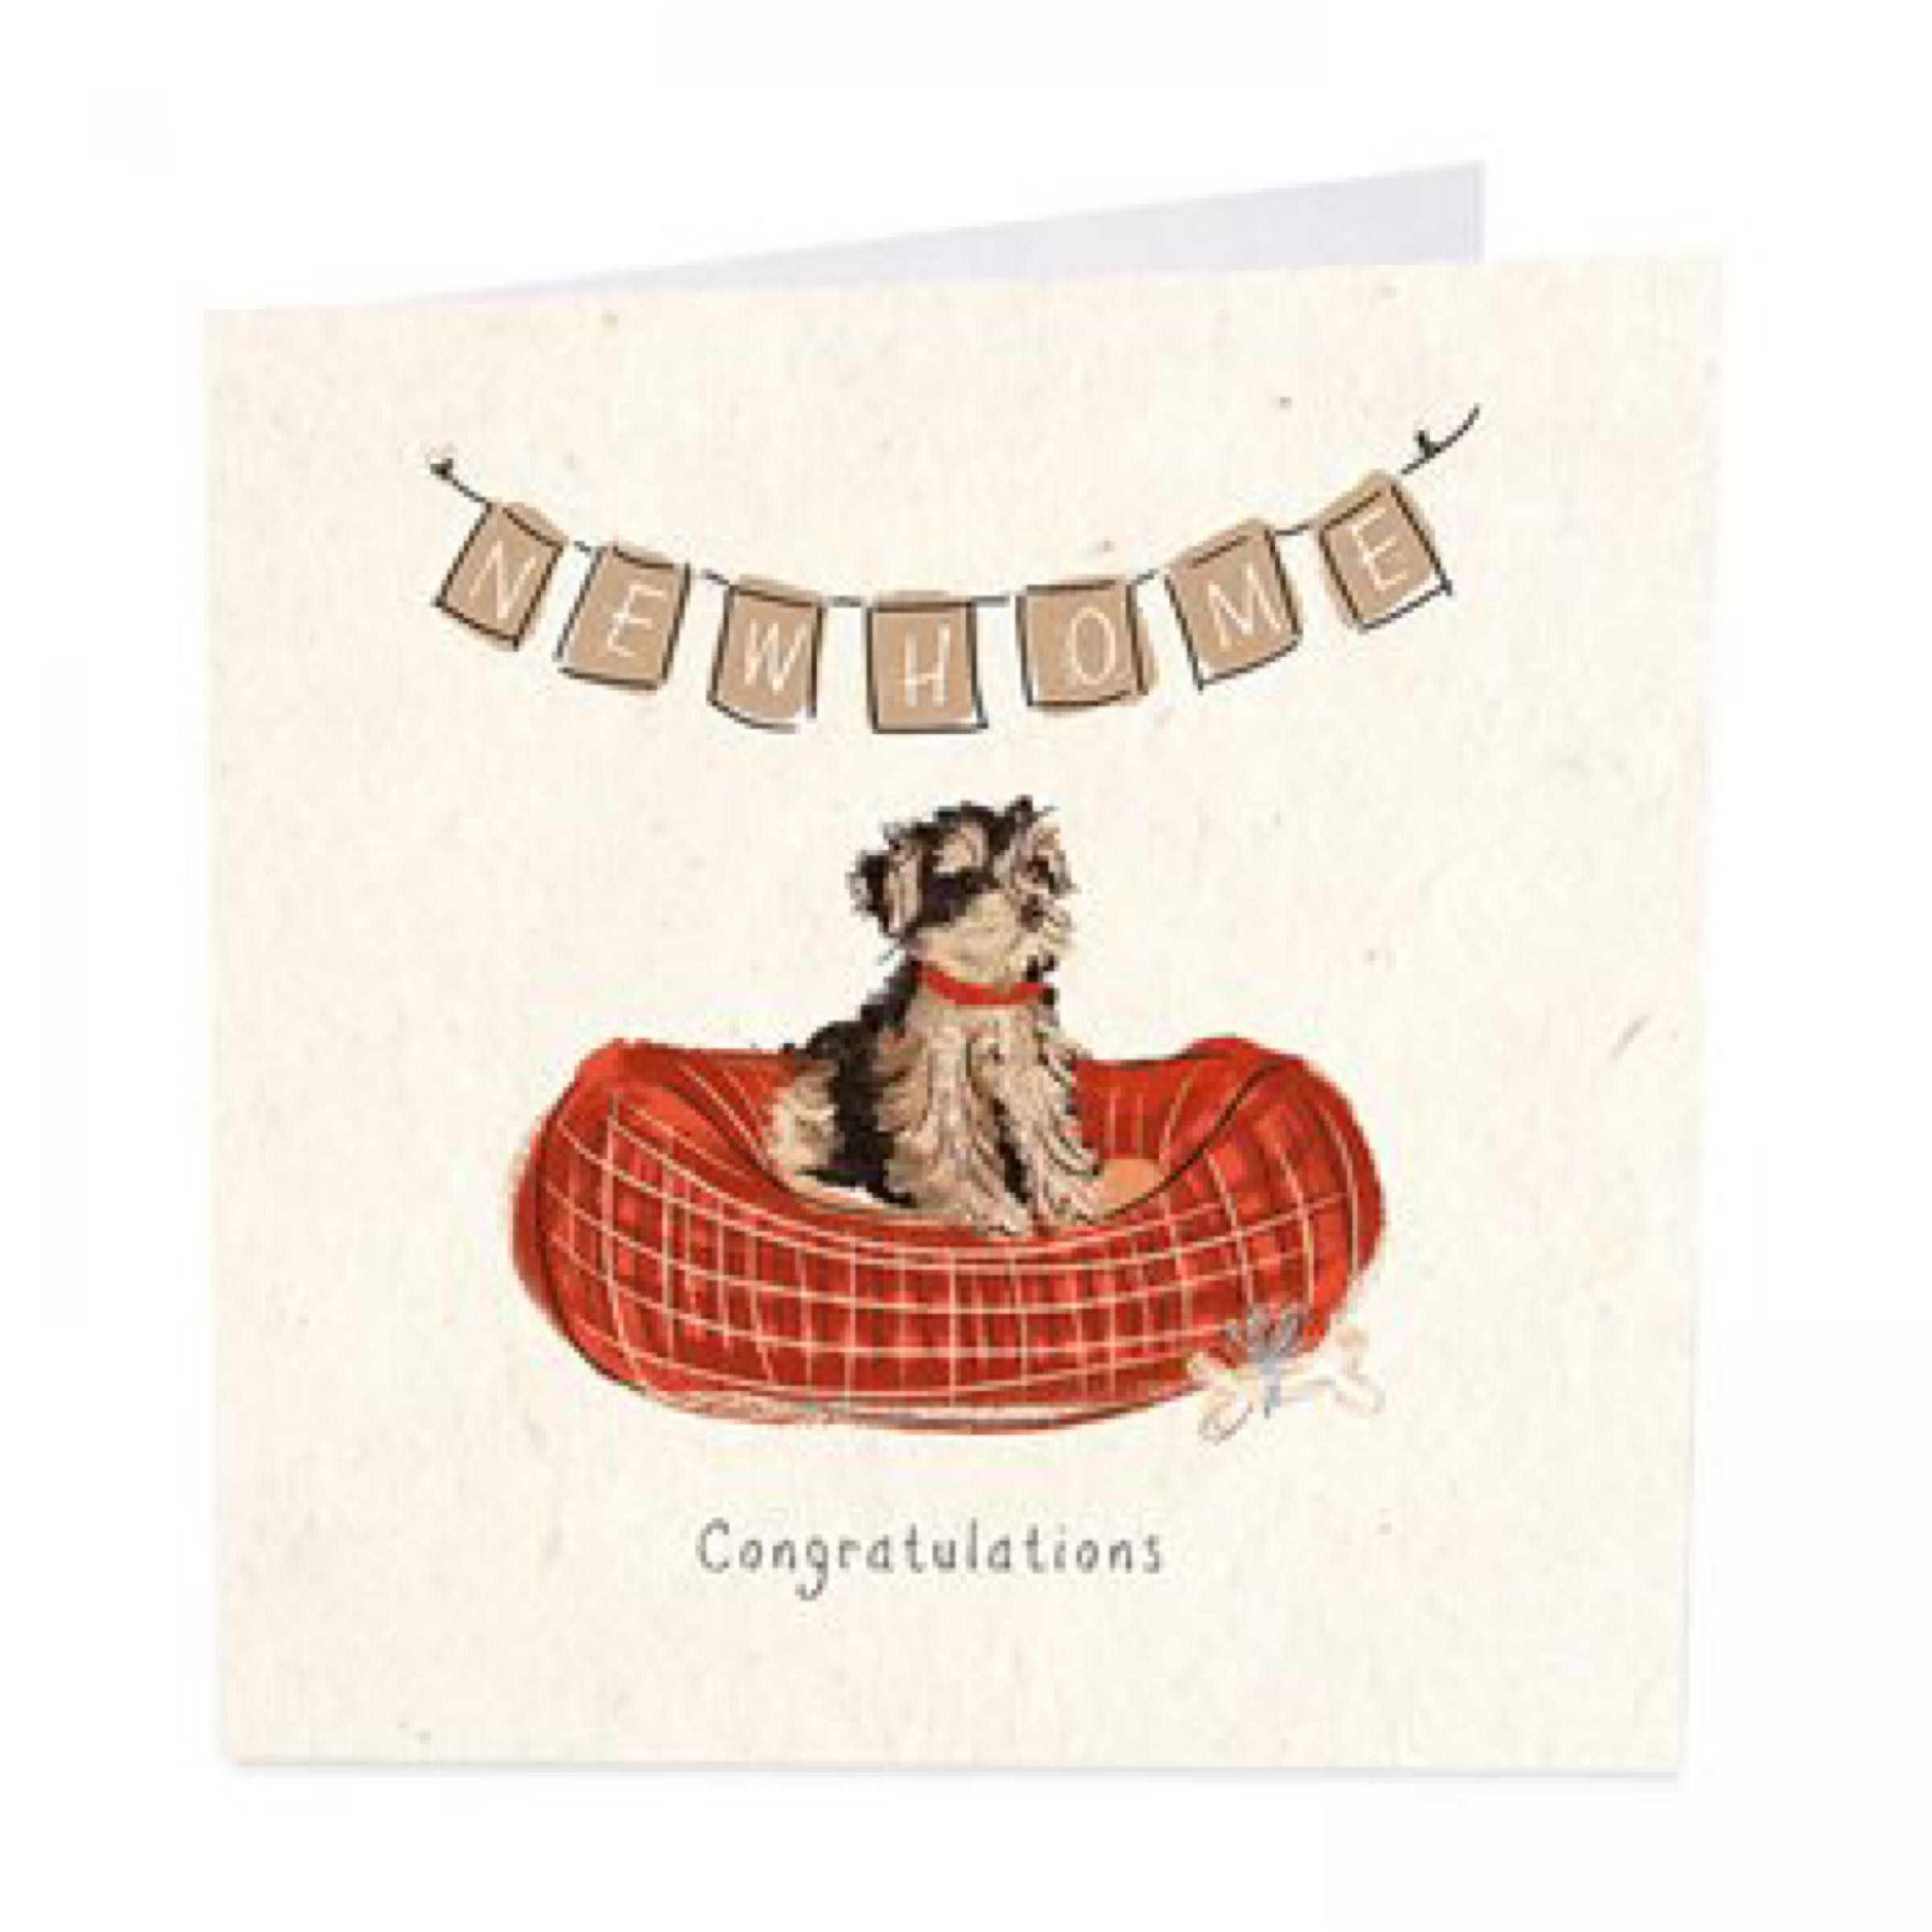 New home -congratulations card (dog)